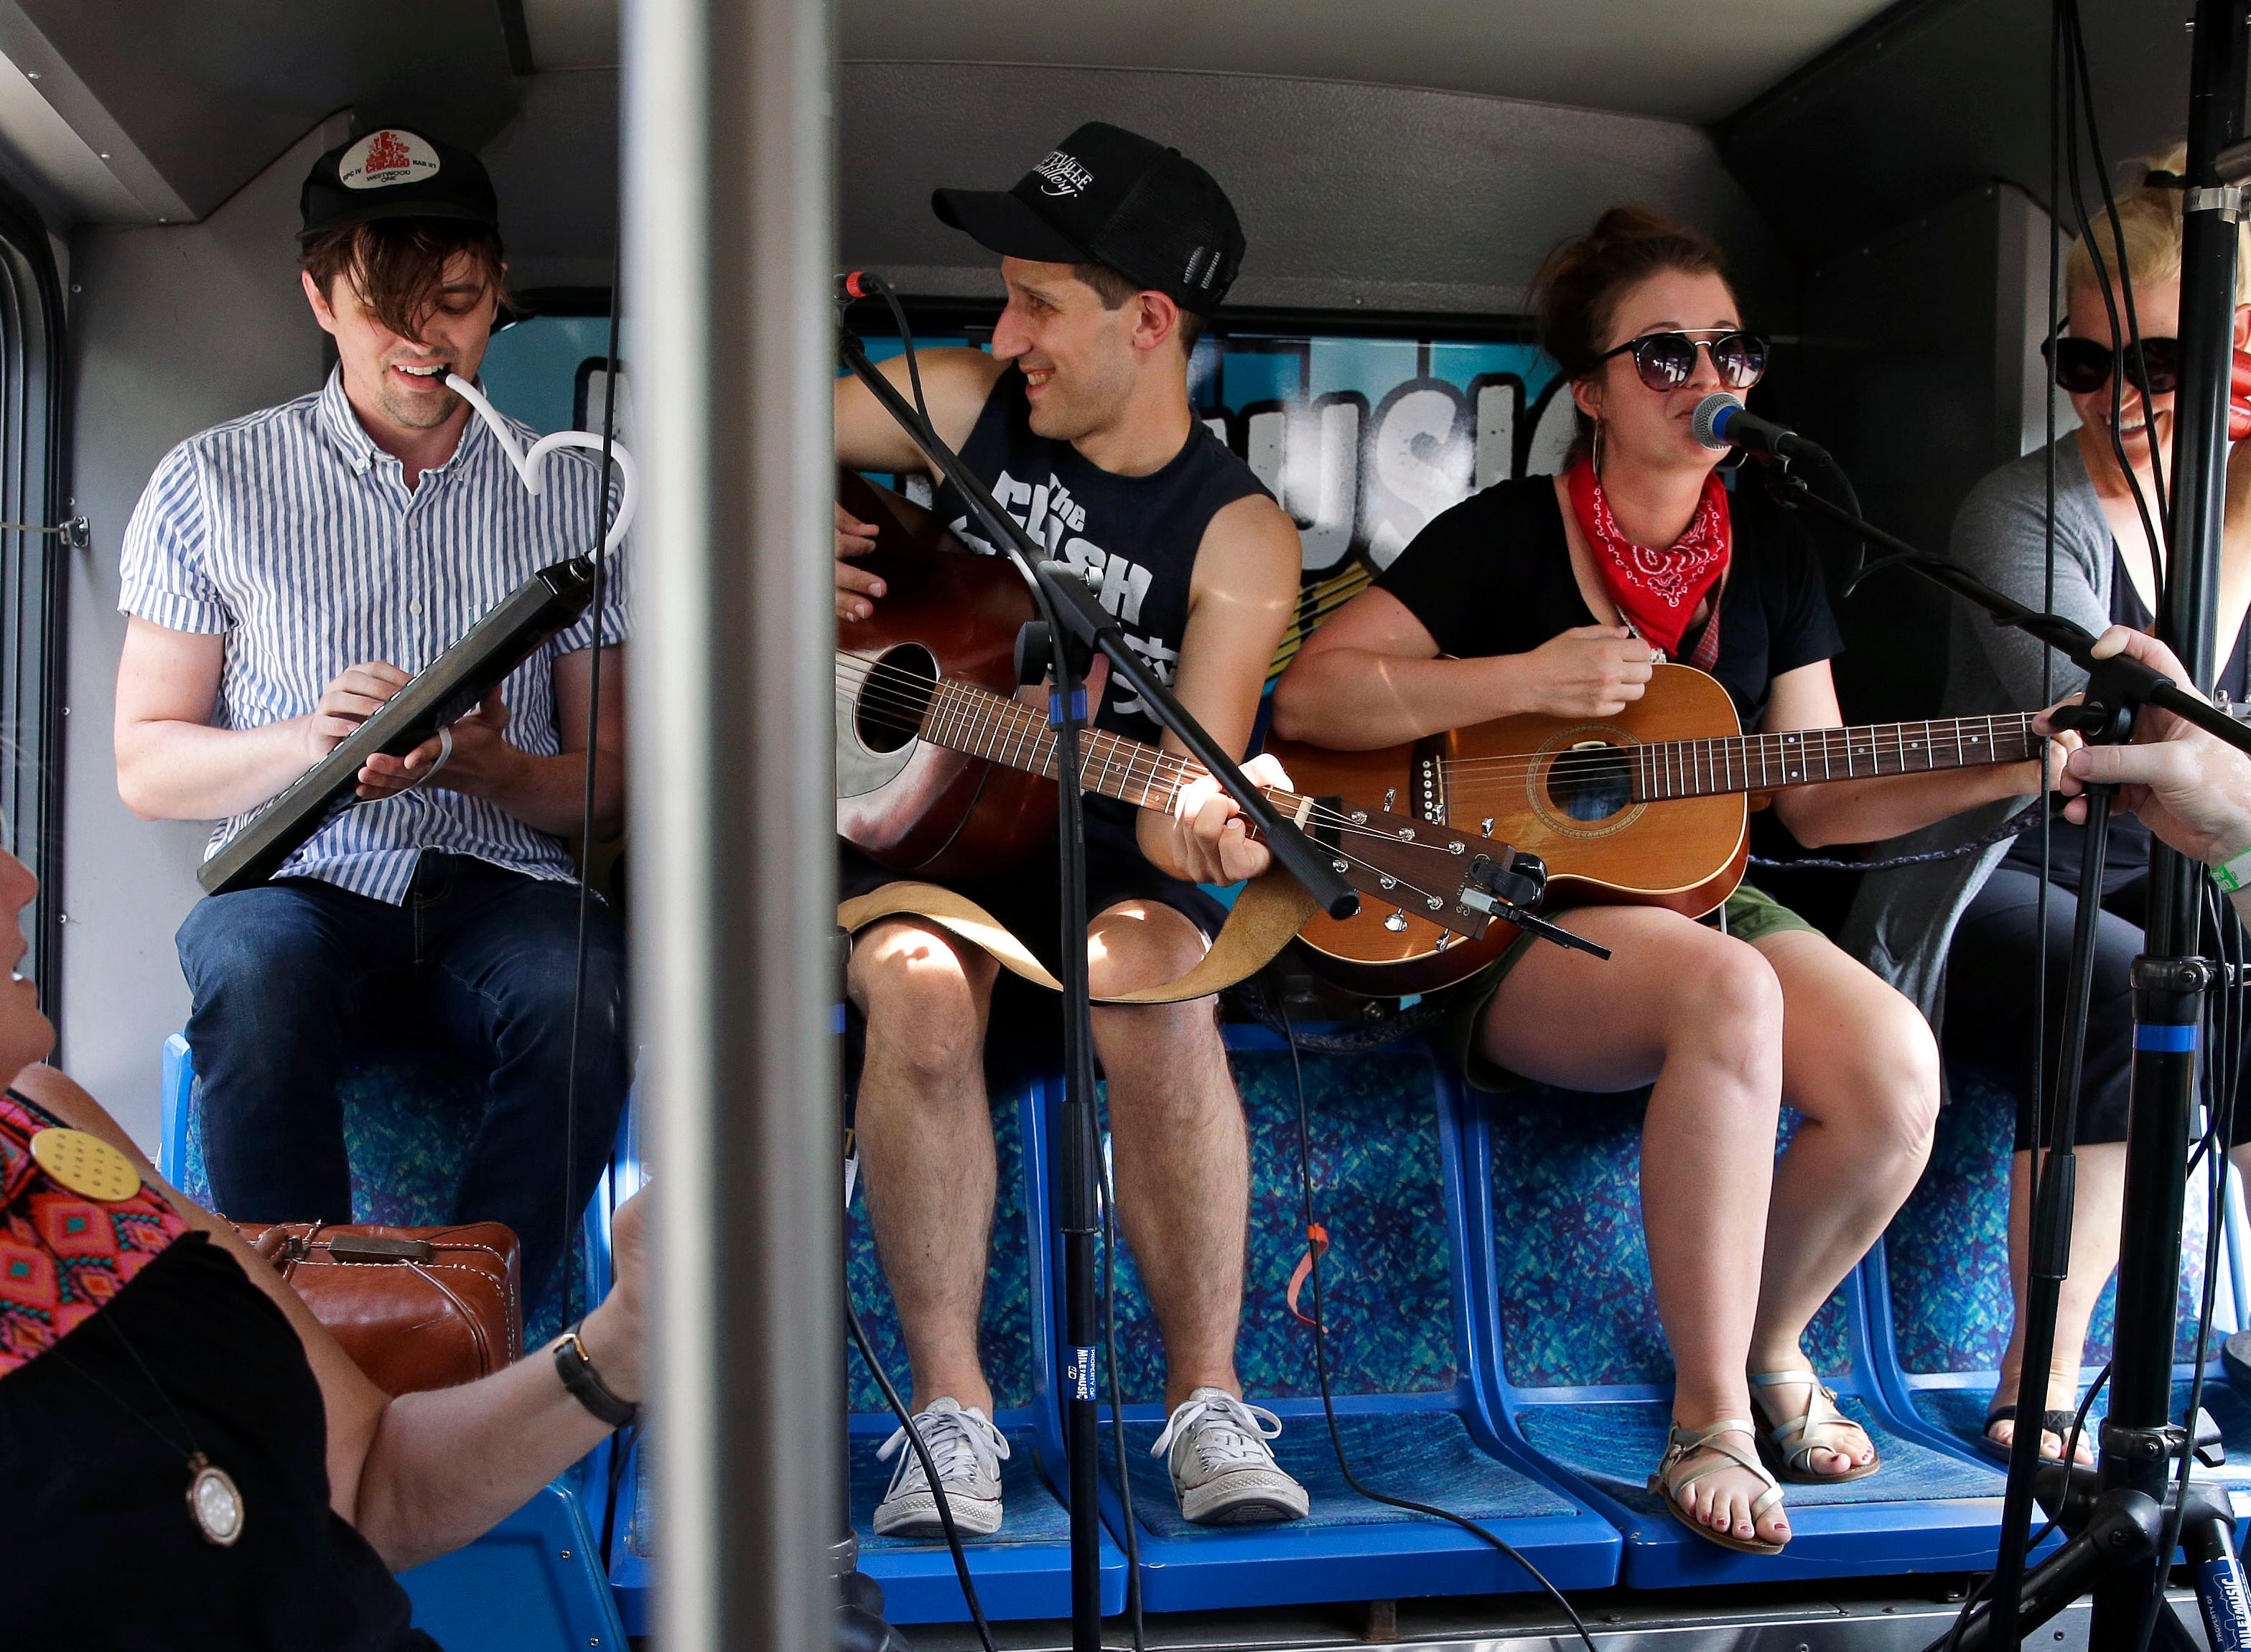 Good Night Gold Dust performs on the Mile of Music Bus during Mile 6 Saturday, August 4, 2018, in Appleton, Wis.Ron Page/USA TODAY NETWORK-Wisconsin